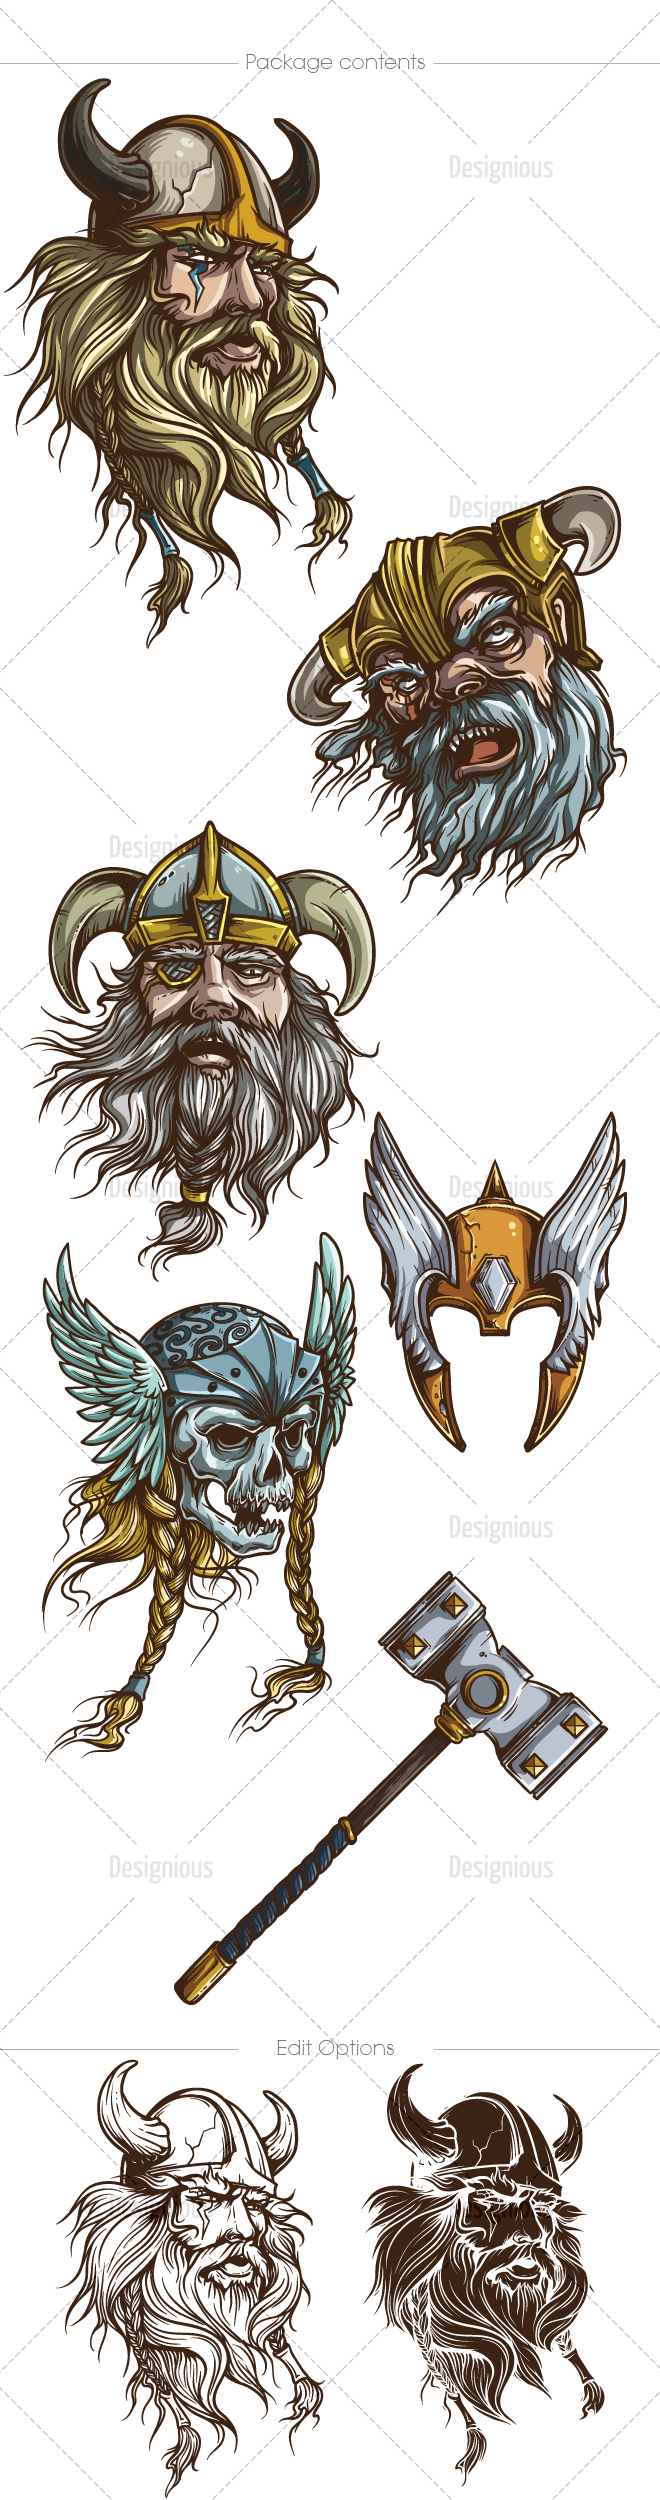 660x2500 Vikings Vector Pack 1 In 2018 Free Vectors Vikings